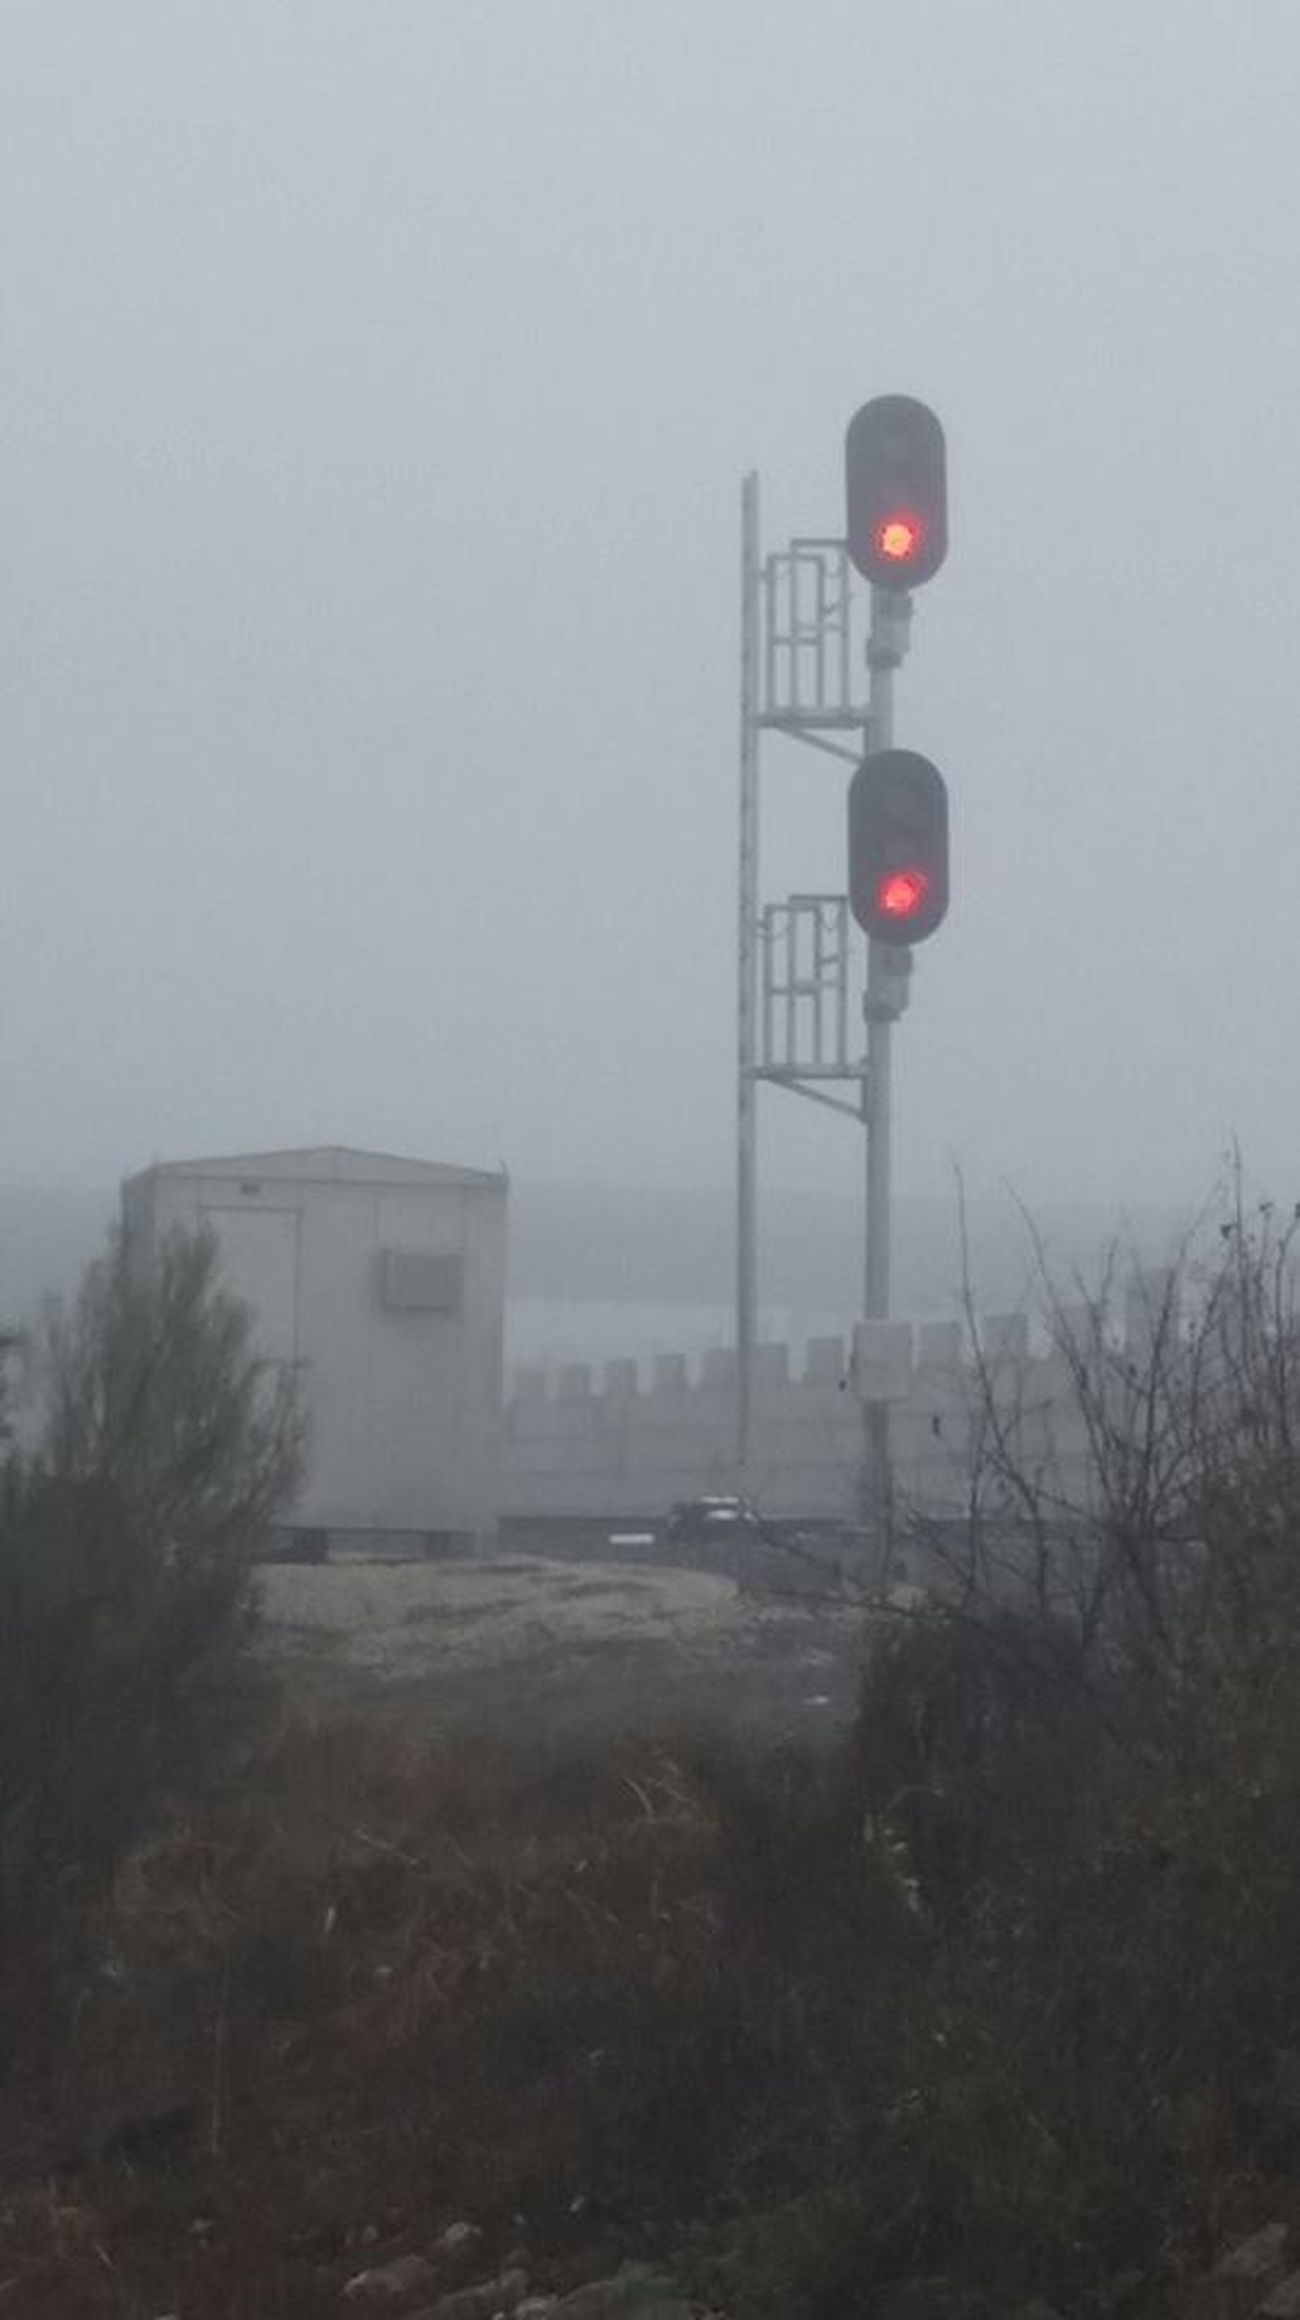 Commuter Train Day Fog Foggy No People Outdoors Red Light Stop Warning Lights